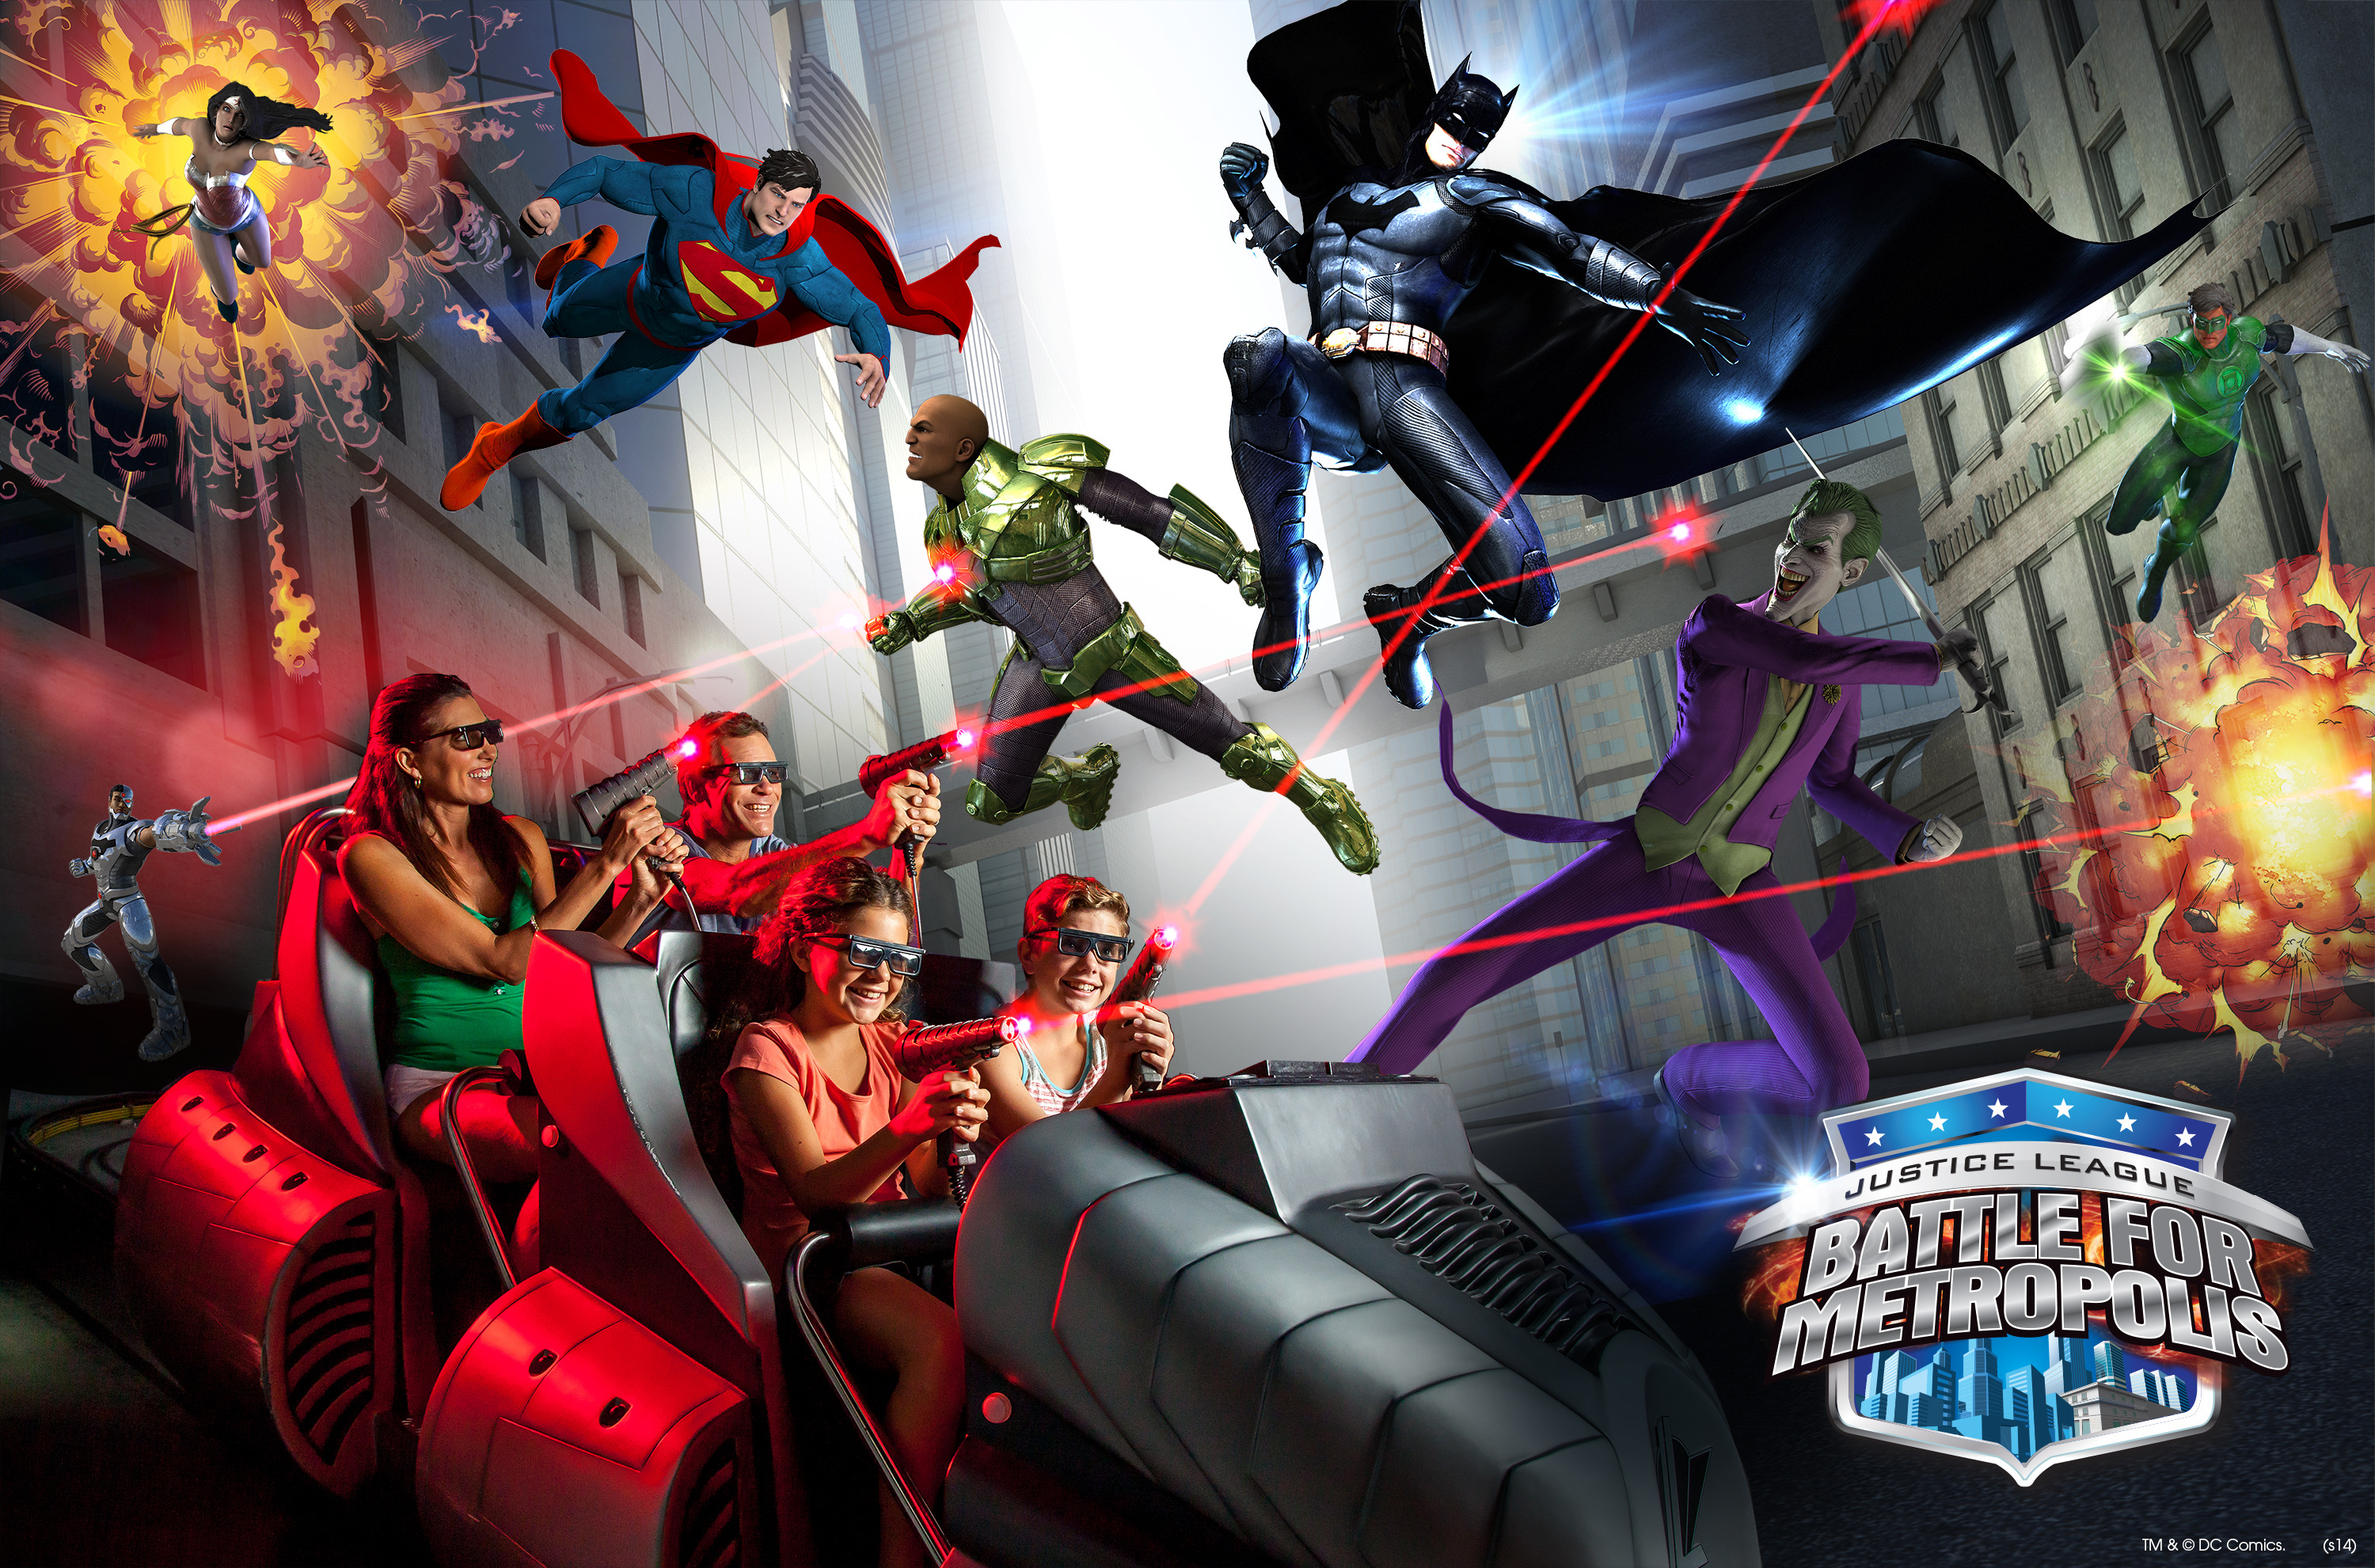 JUSTICE LEAGUE: BATTLE FOR METROPOLIS – NEW at Six Flags Over Texas and Six Flags St. Louis - Spring 2015